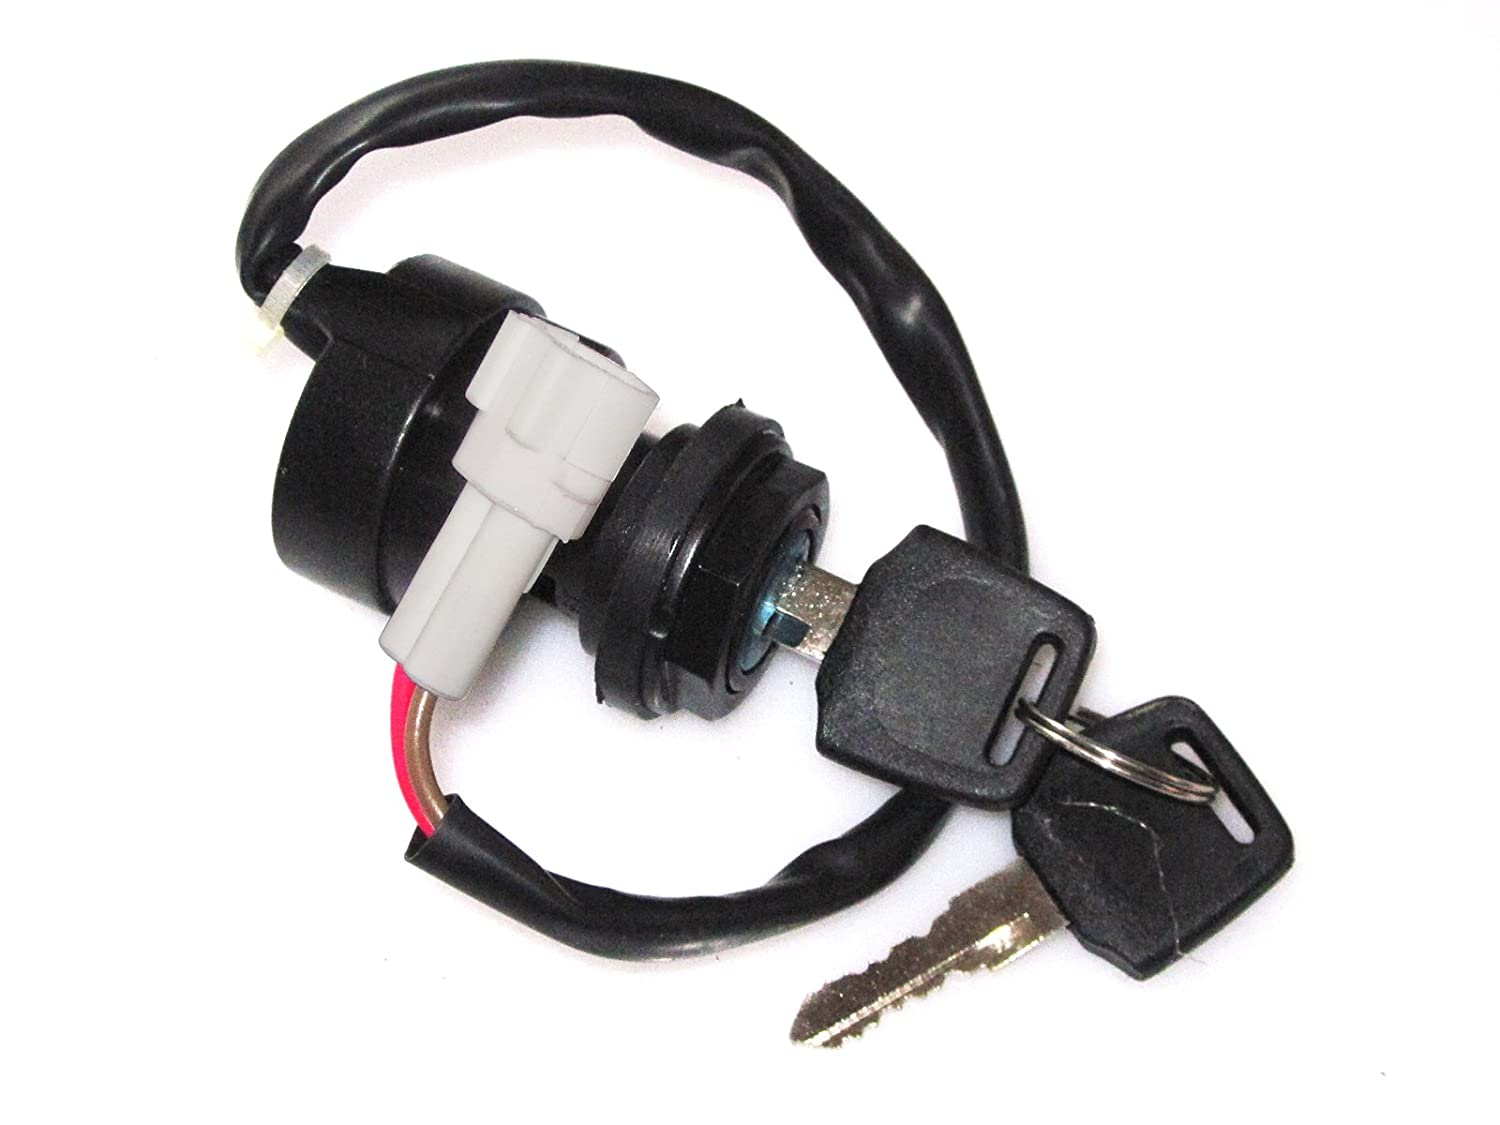 71APaKhnY5L._SL1500_ amazon com 2 wire ignition key switch yamaha atv raptor warrior 2002 Yamaha Big Bear Wiring Diagram at mifinder.co